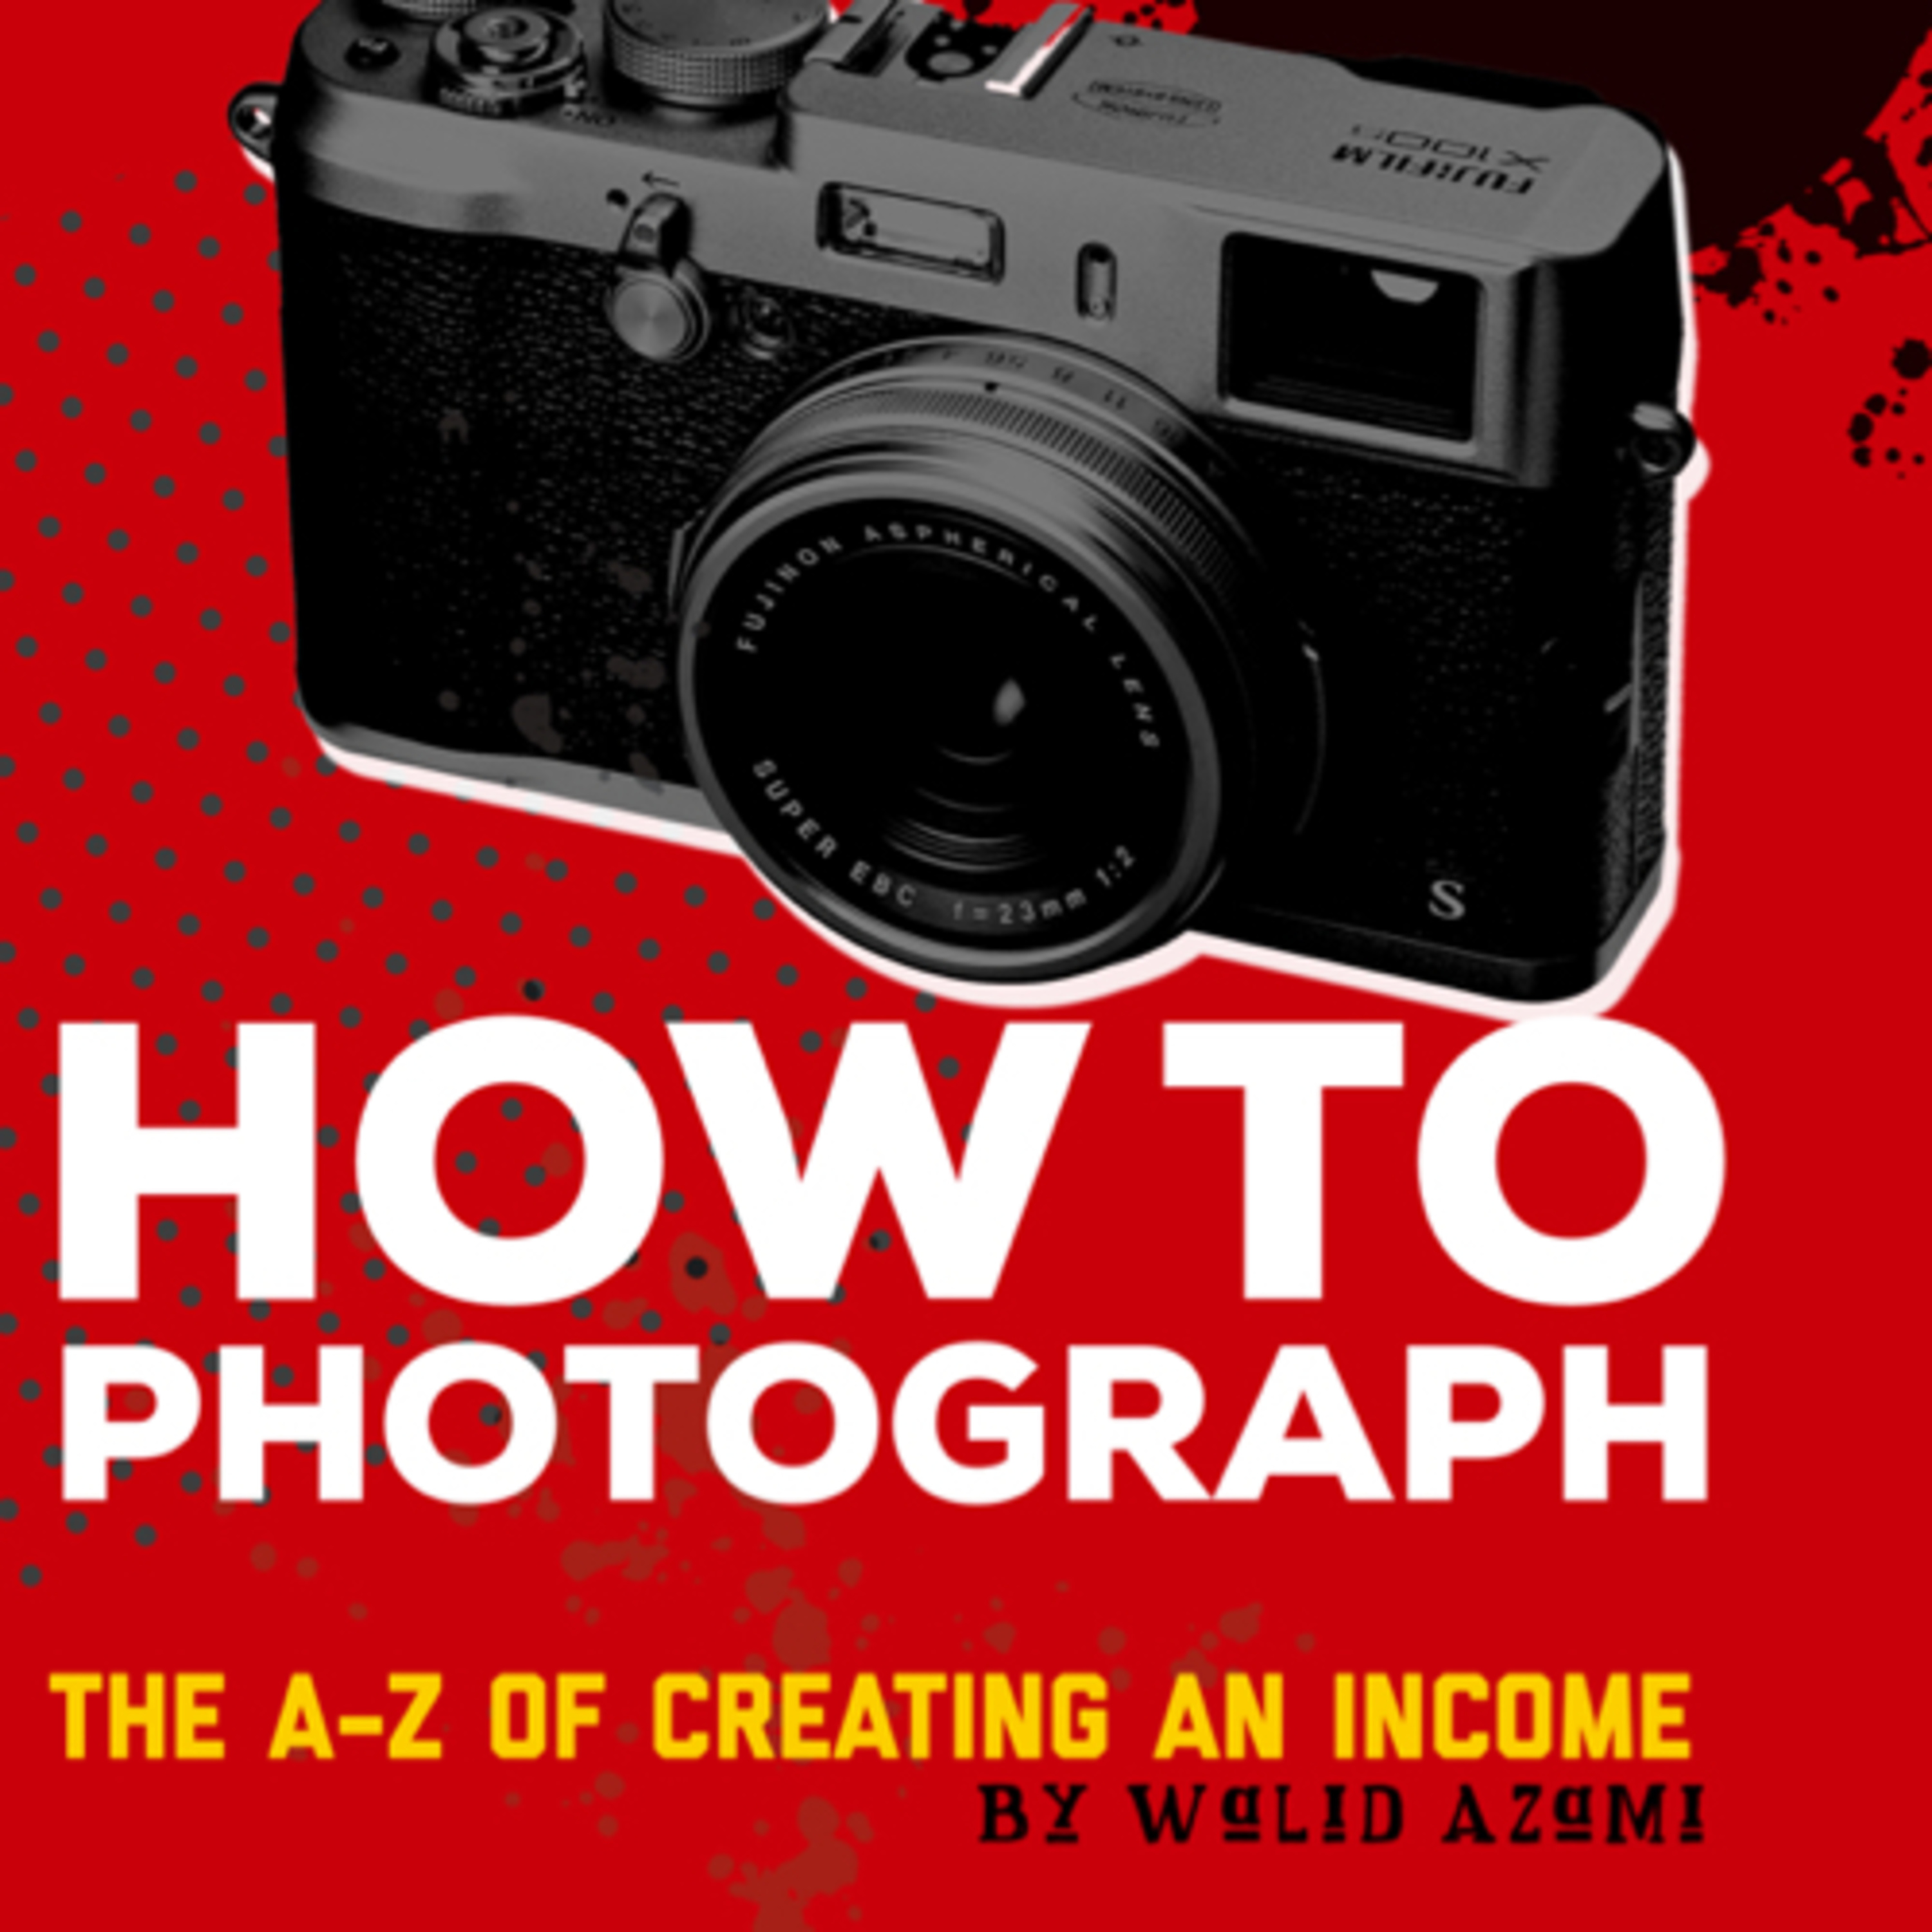 How to Photograph: From Passion to Profit (by Walid Azami)